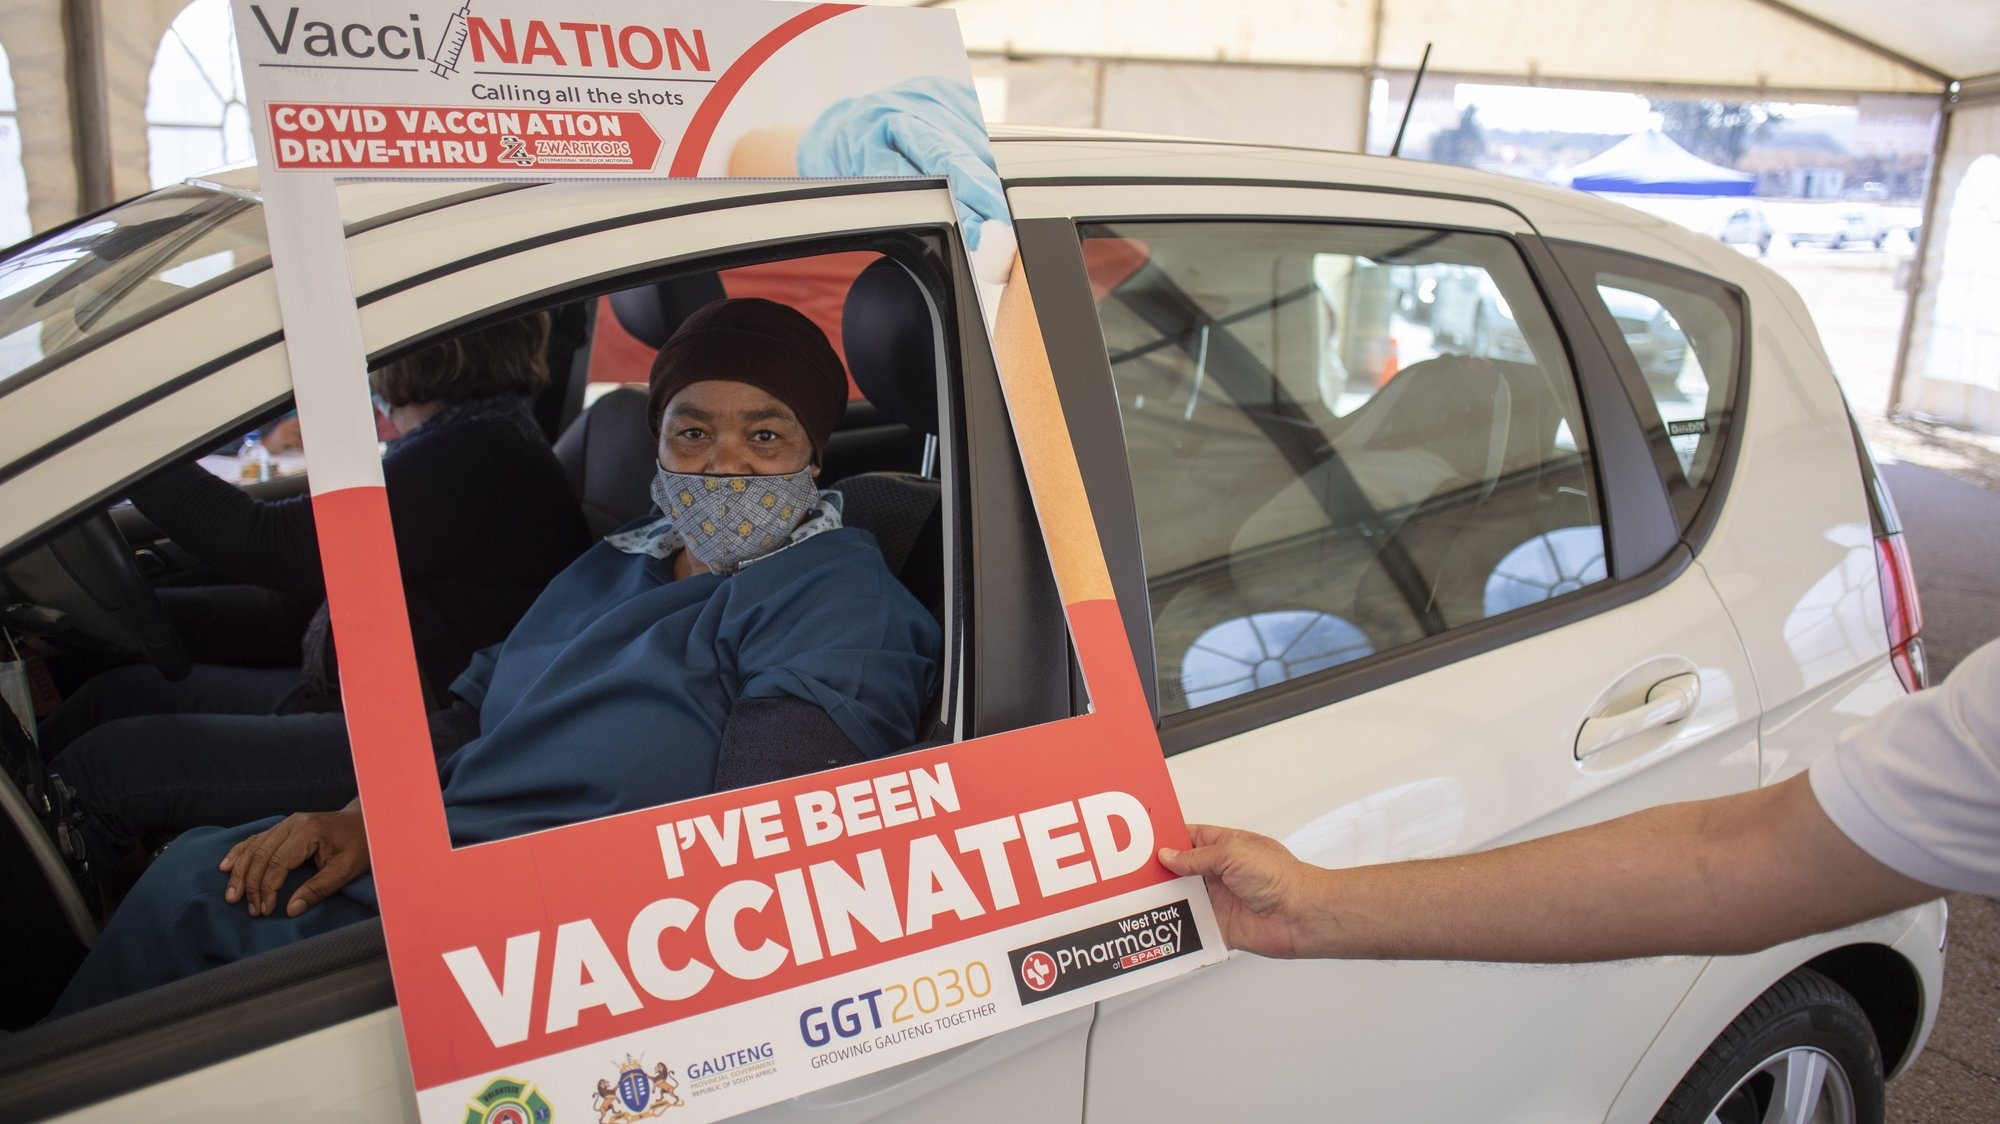 epa09418882 A person has her vaccine administered at a drive through Covid-19 coronavirus vaccination site at the Swartkops Raceway in Pretoria, South Africa, 18 August 2021. South Africa has to date vaccinated 17 percent of the population and is aiming at starting vaccinations for over 18 year olds in the next weeks.  EPA/KIM LUDBROOK